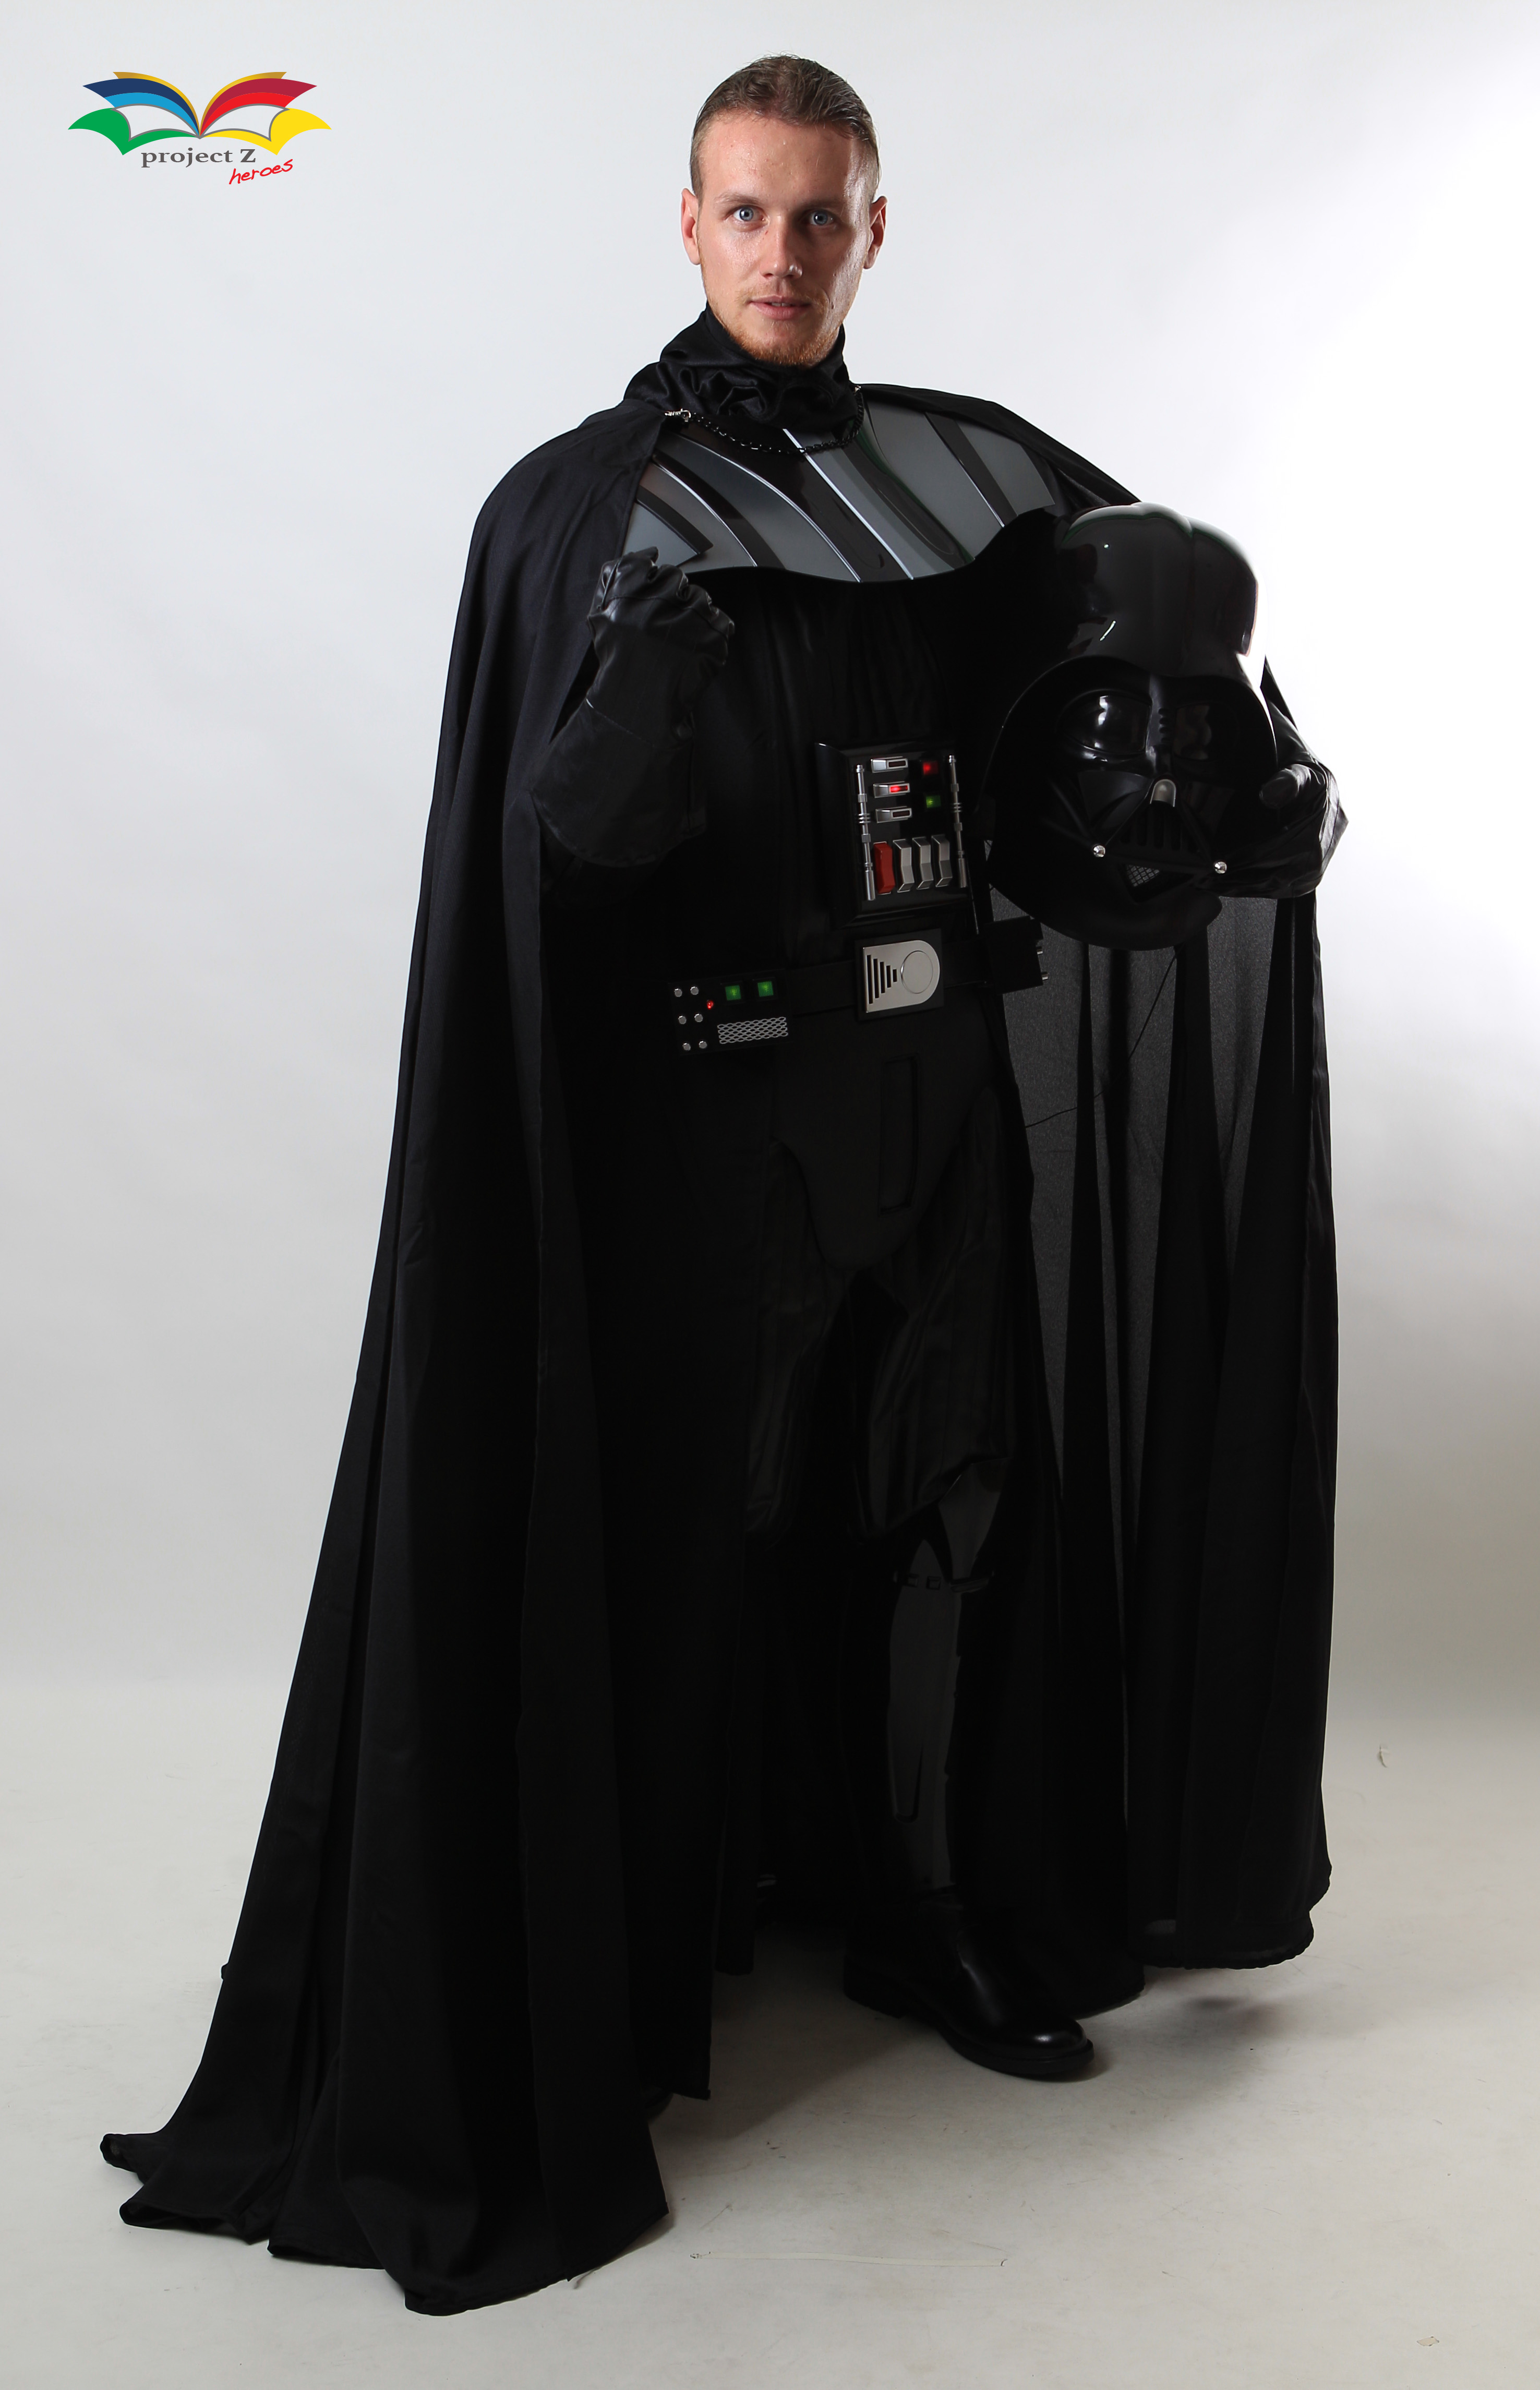 Darth Vader costume without hemlet